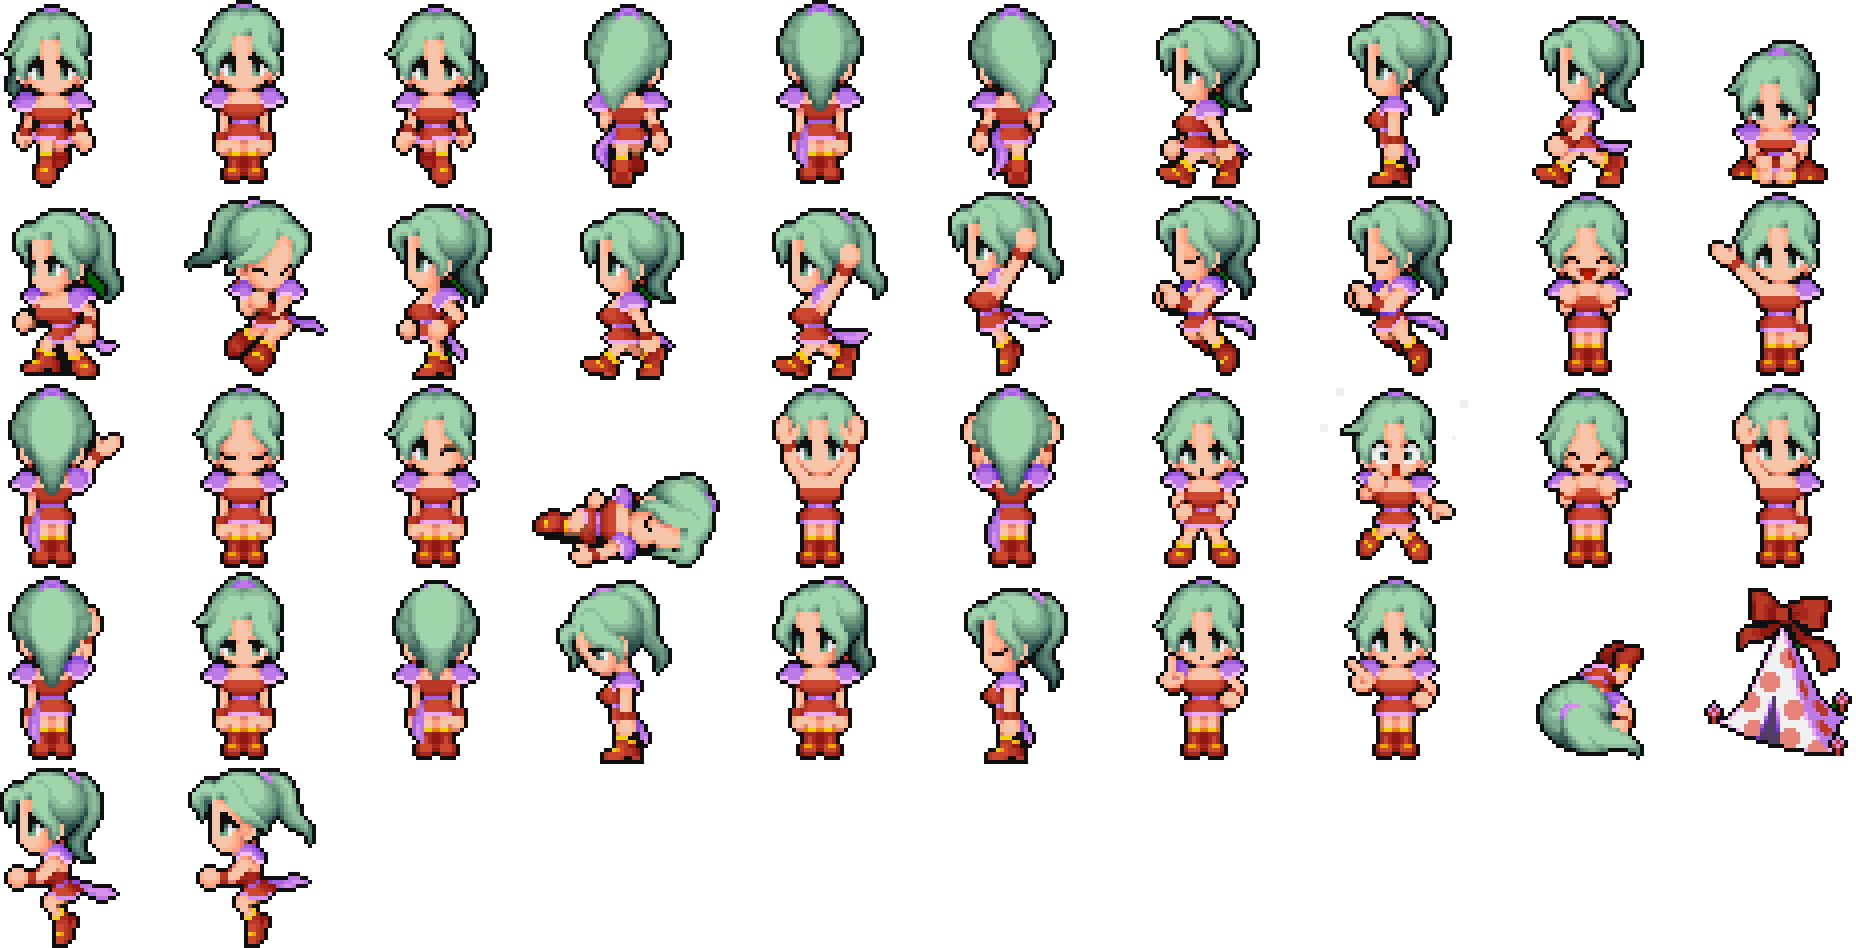 Transparent sprite character. Doing an hd remake